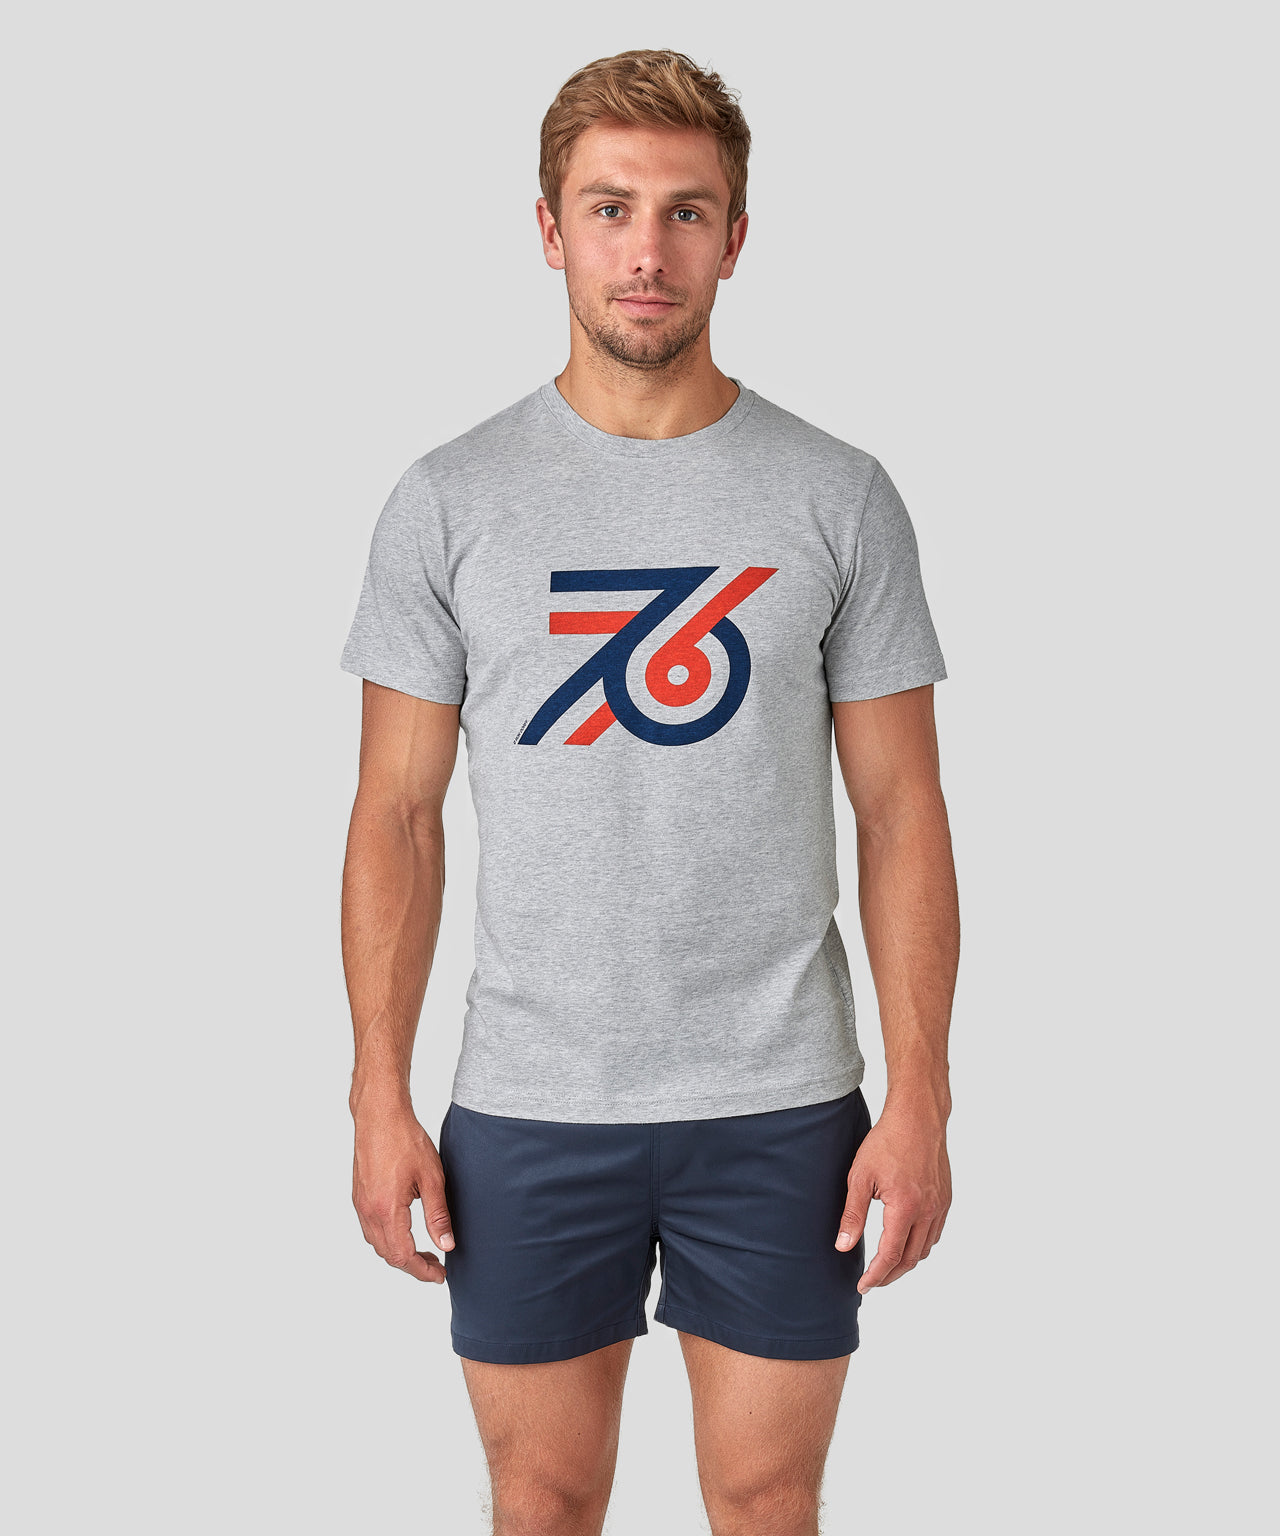 T-Shirt 76 - grey melange